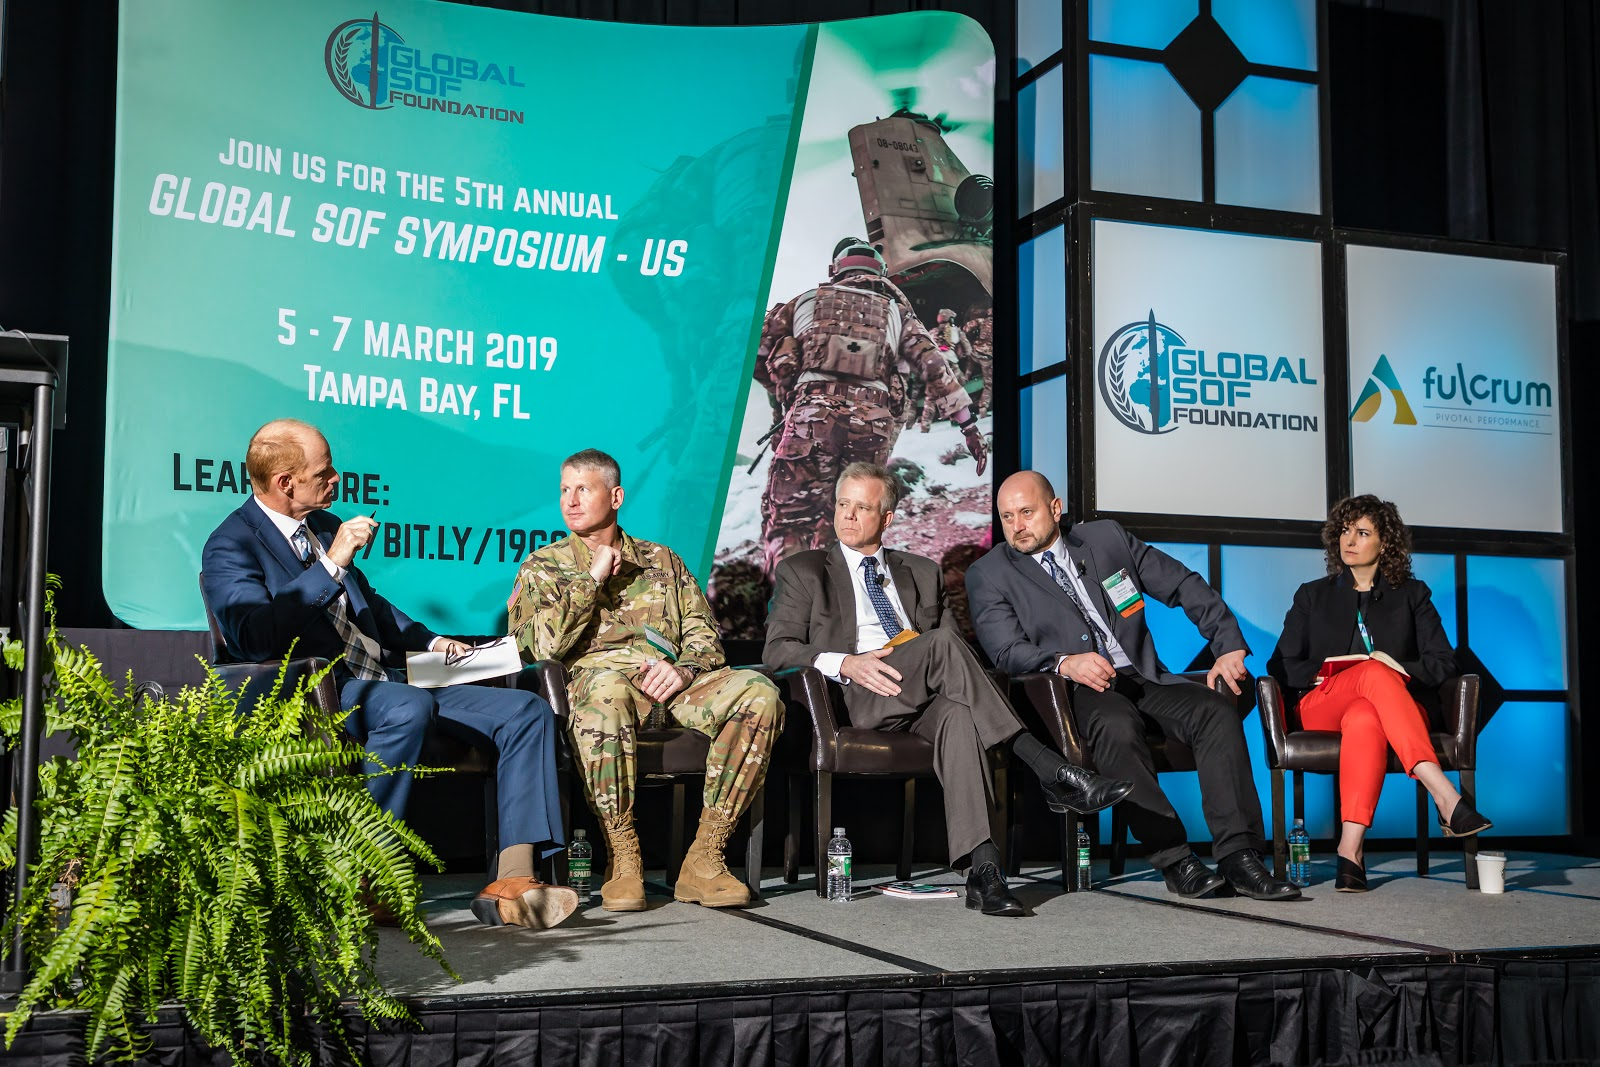 Reflecting on the 2019 Global SOF Symposium with GSF Leadership